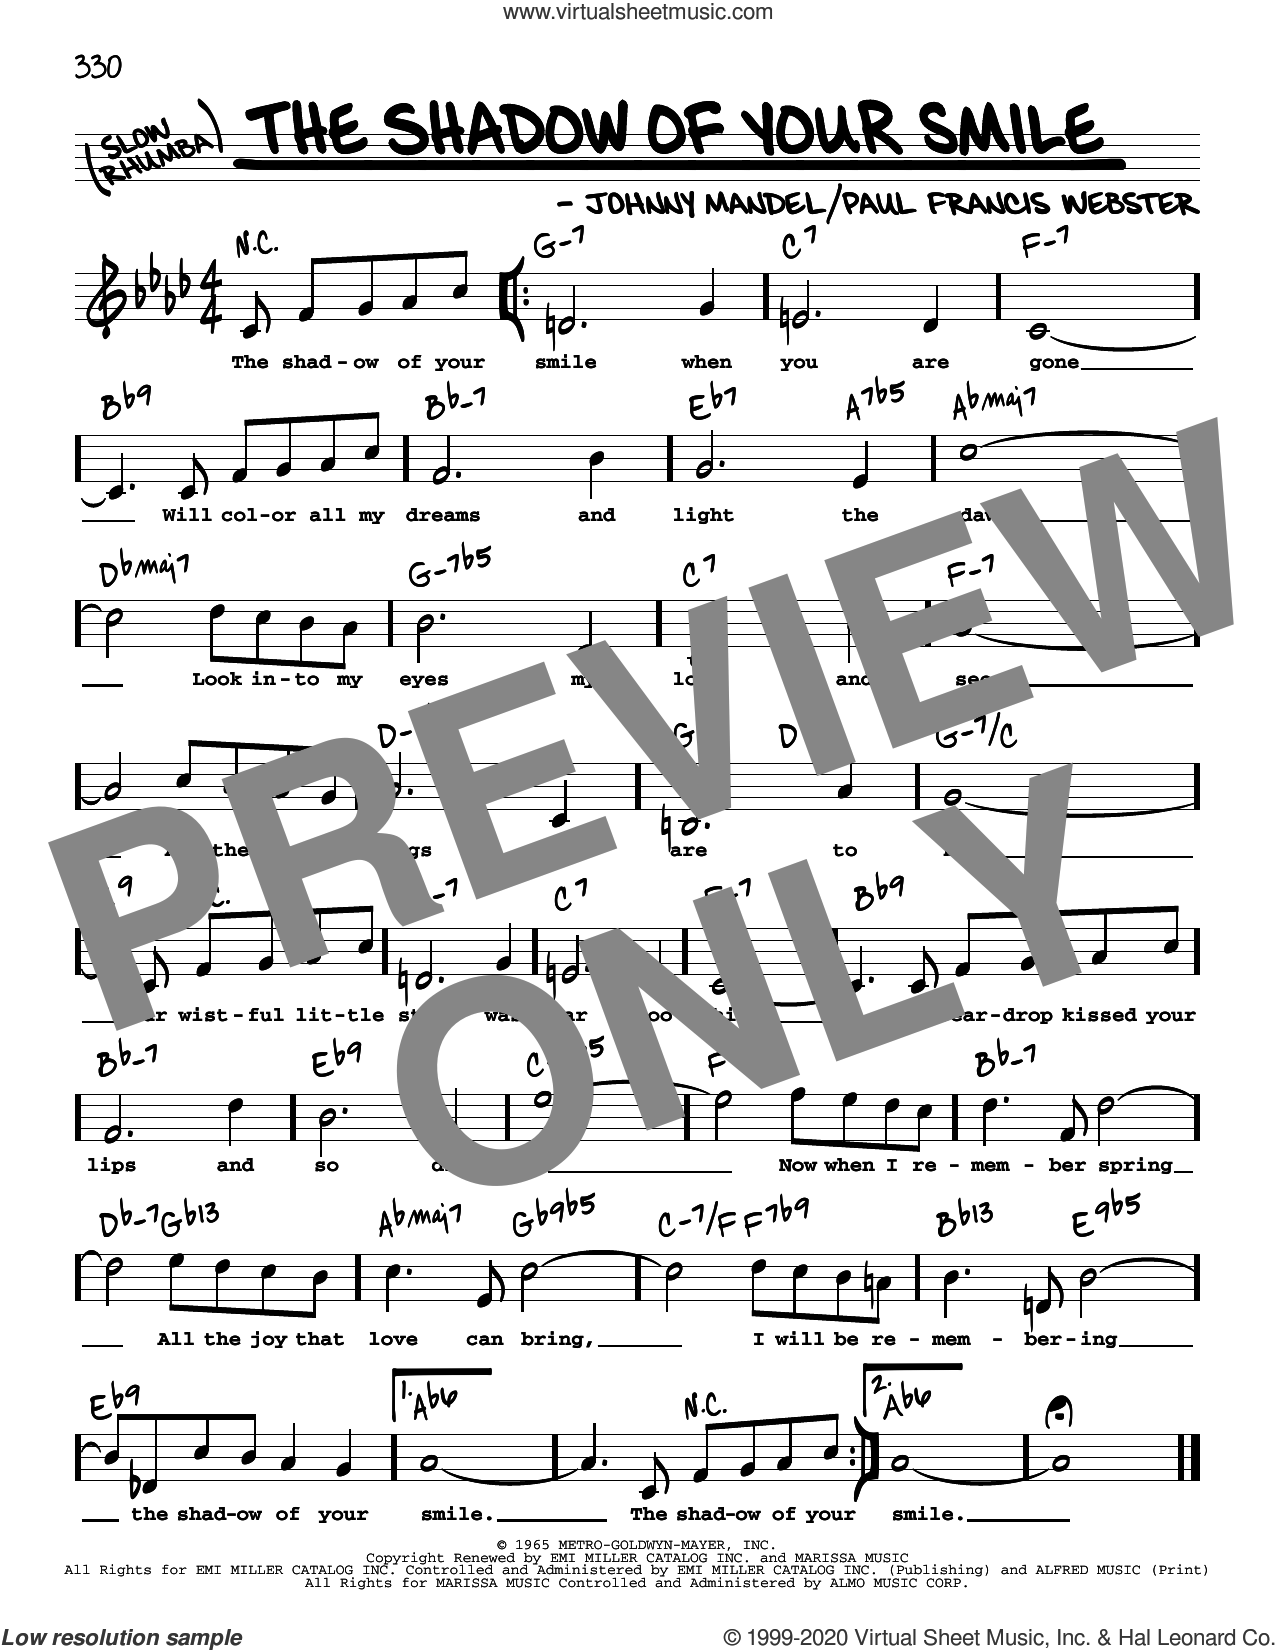 The Shadow Of Your Smile (High Voice) sheet music for voice and other instruments (high voice) by Paul Francis Webster and Johnny Mandel, intermediate skill level